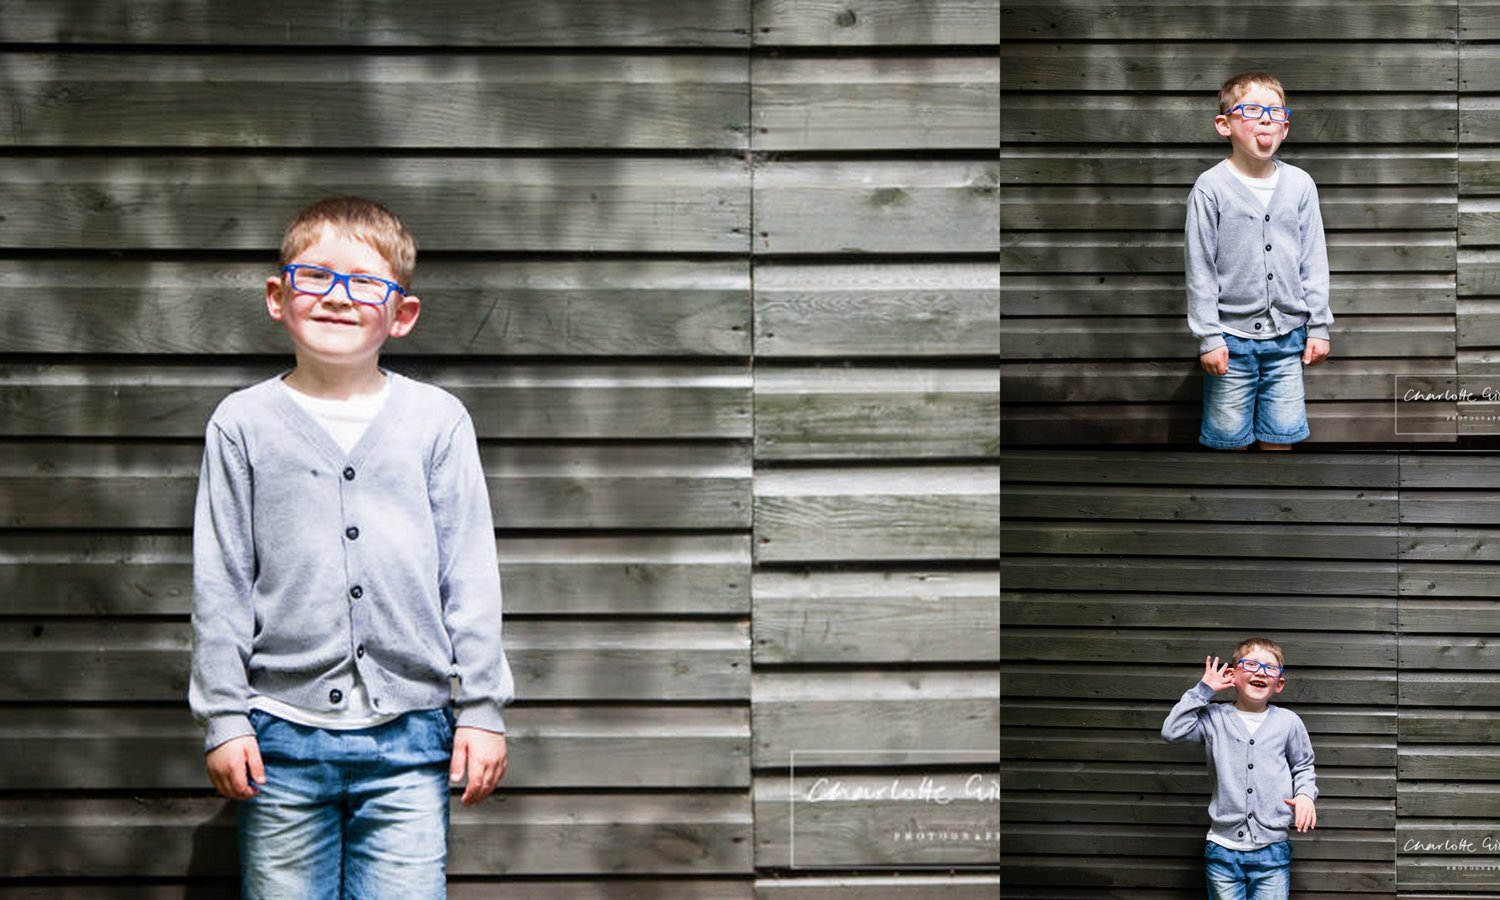 little boy with cool blue glasses standing against army green tin shed holding expressive faces and looking cool - charlotte giddings photography